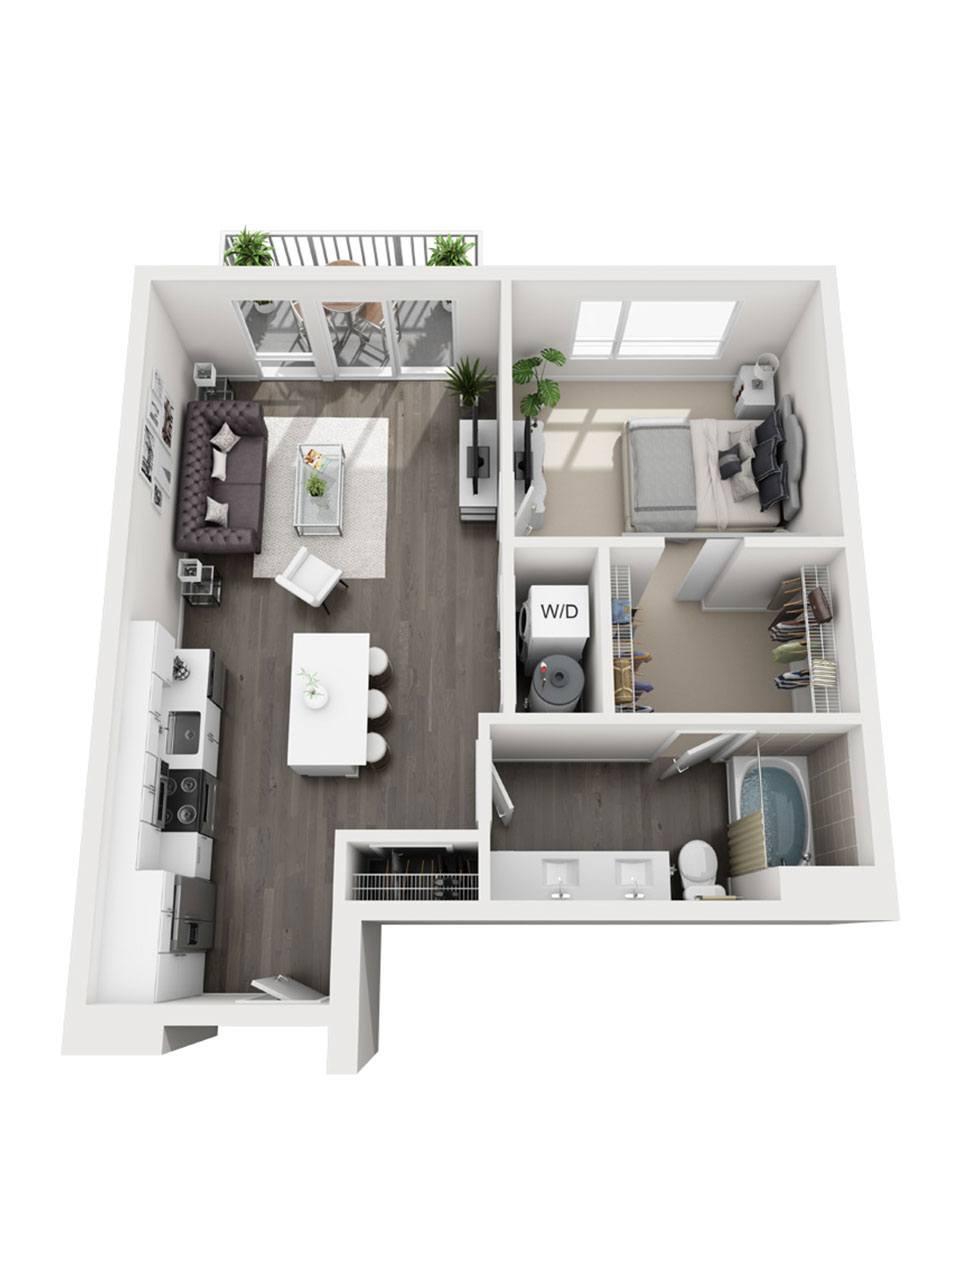 Plan 1 Bedroom – A7 | 1 Bath